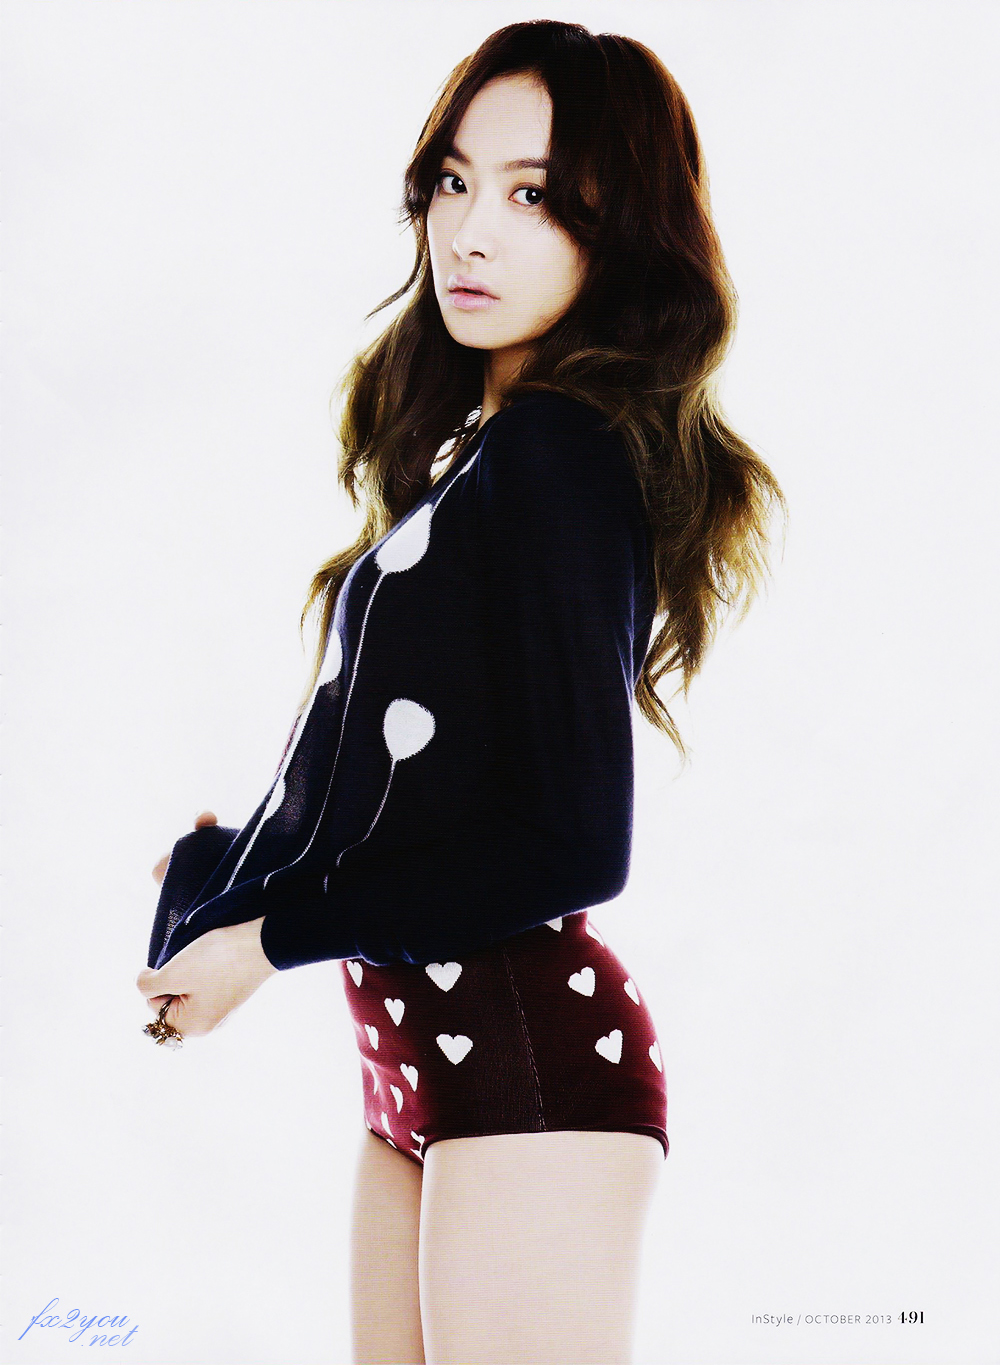 f(x) 에프엑스 images Victoria InStyle Scan HD wallpaper and ... F(x) Amber Pink Tape